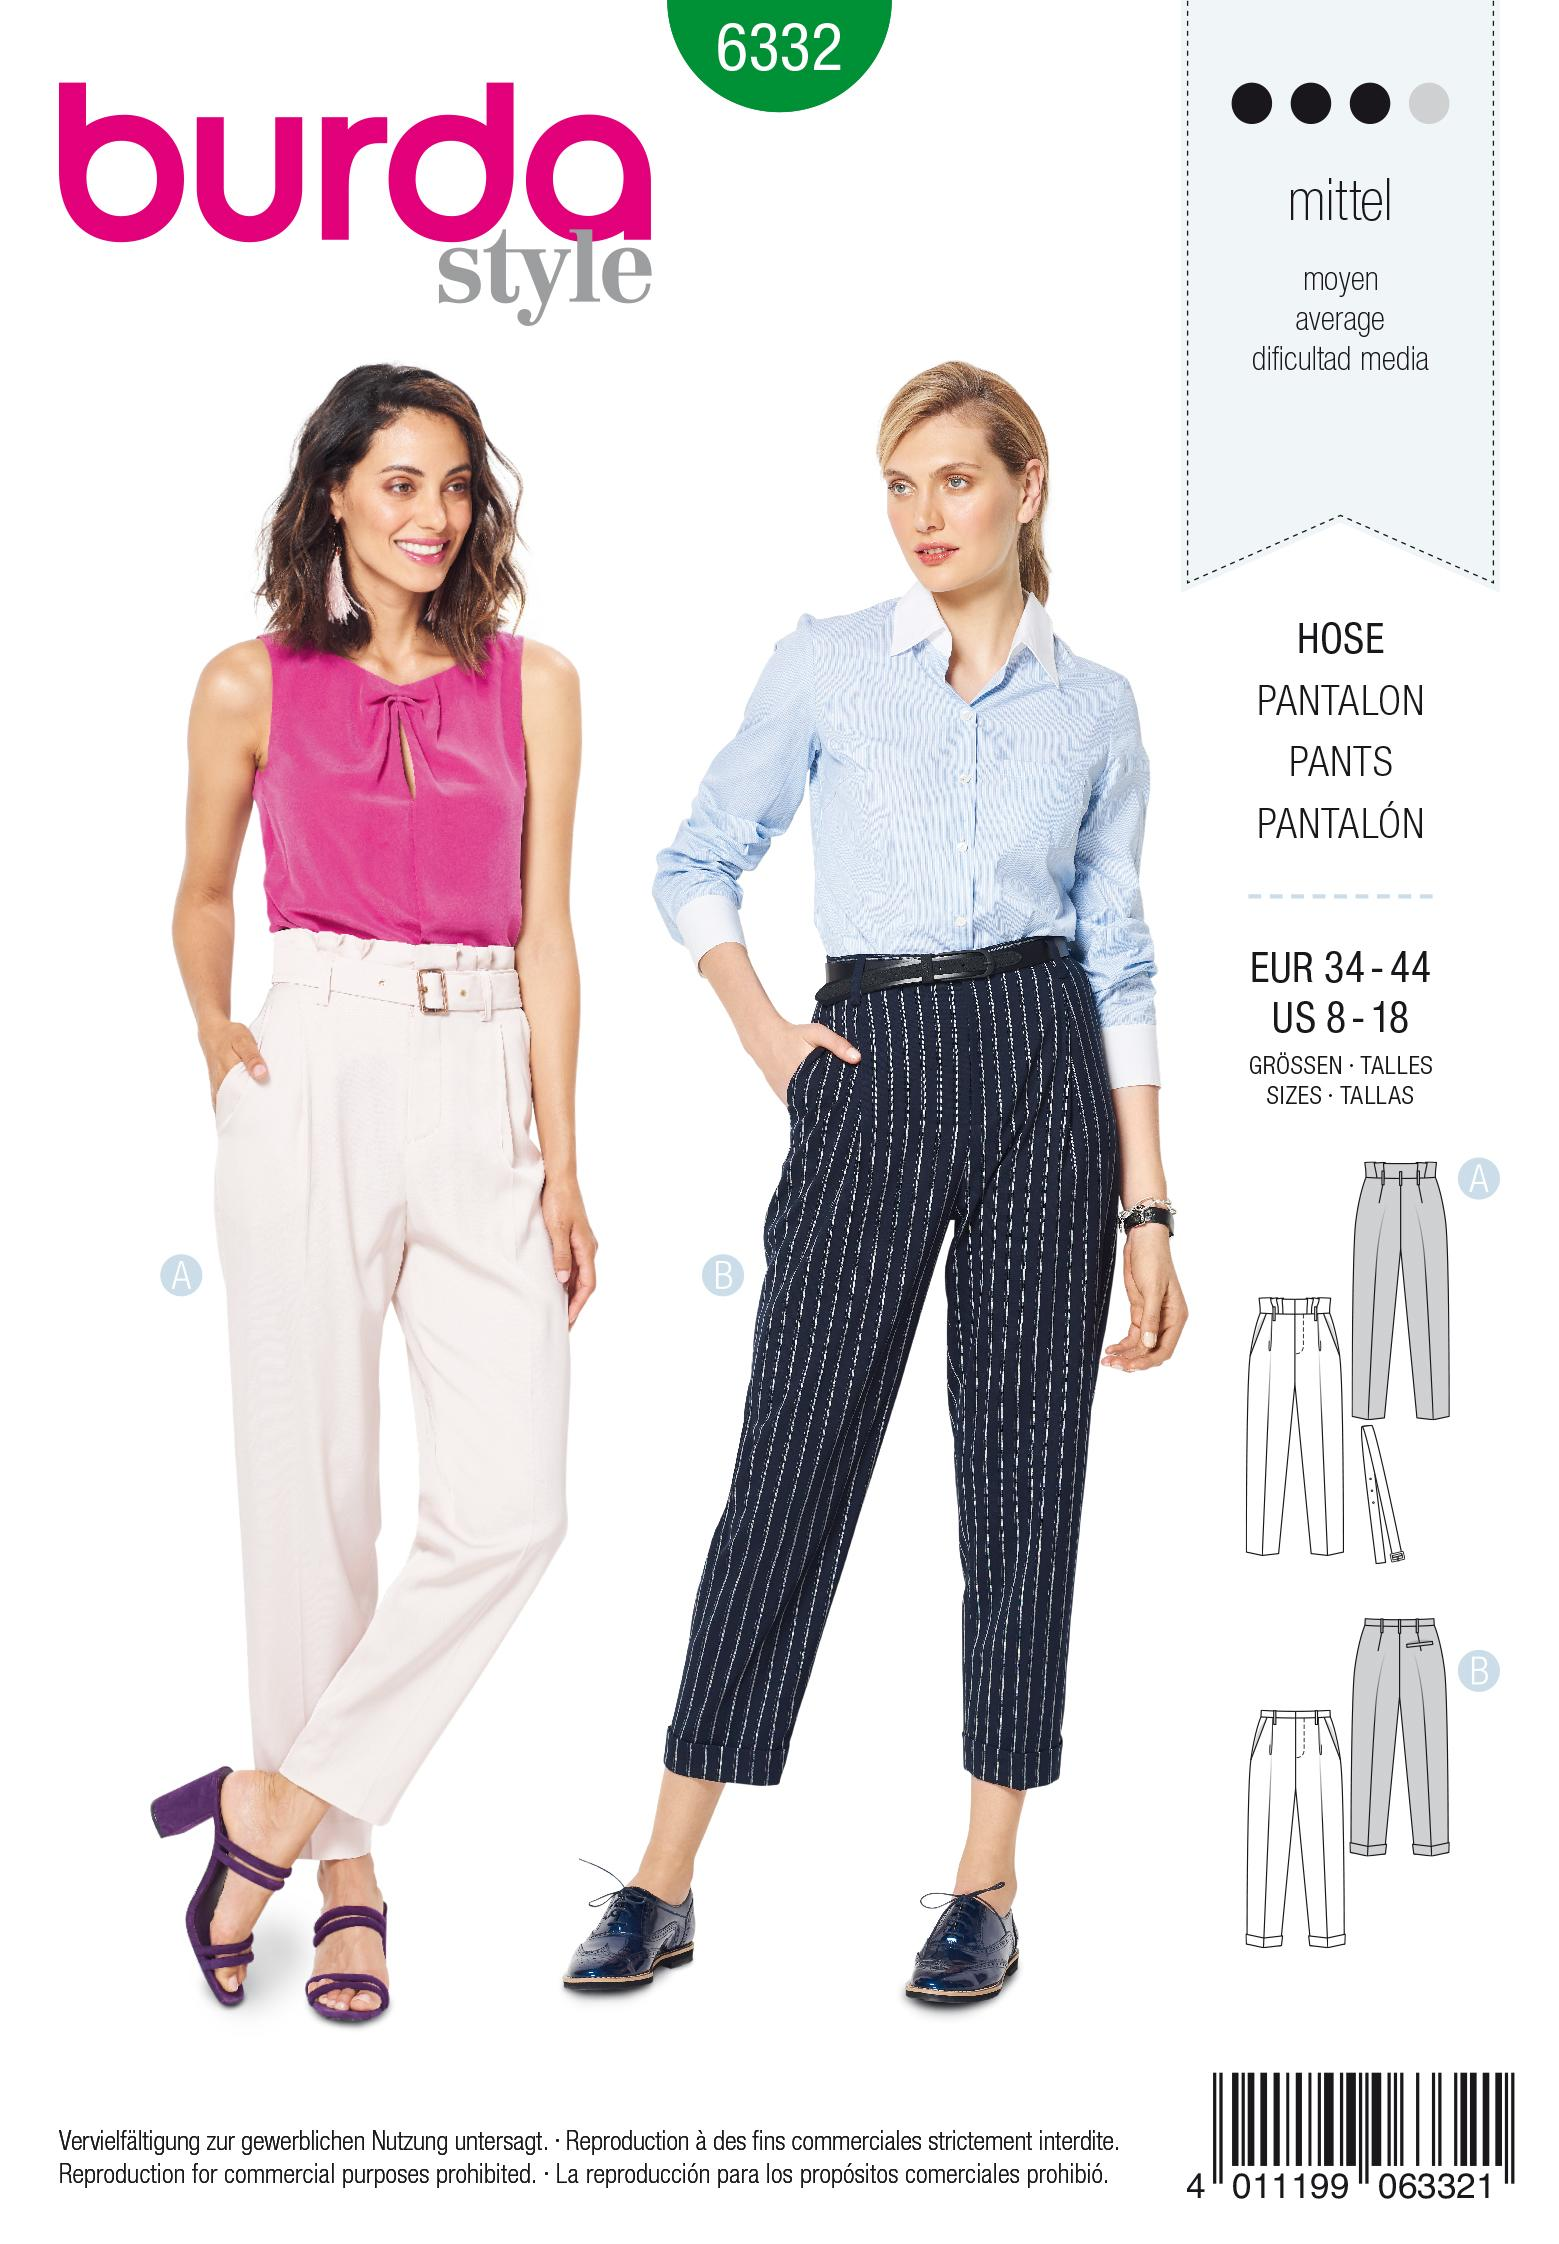 Burda 6332 Misses' highwaisted pants